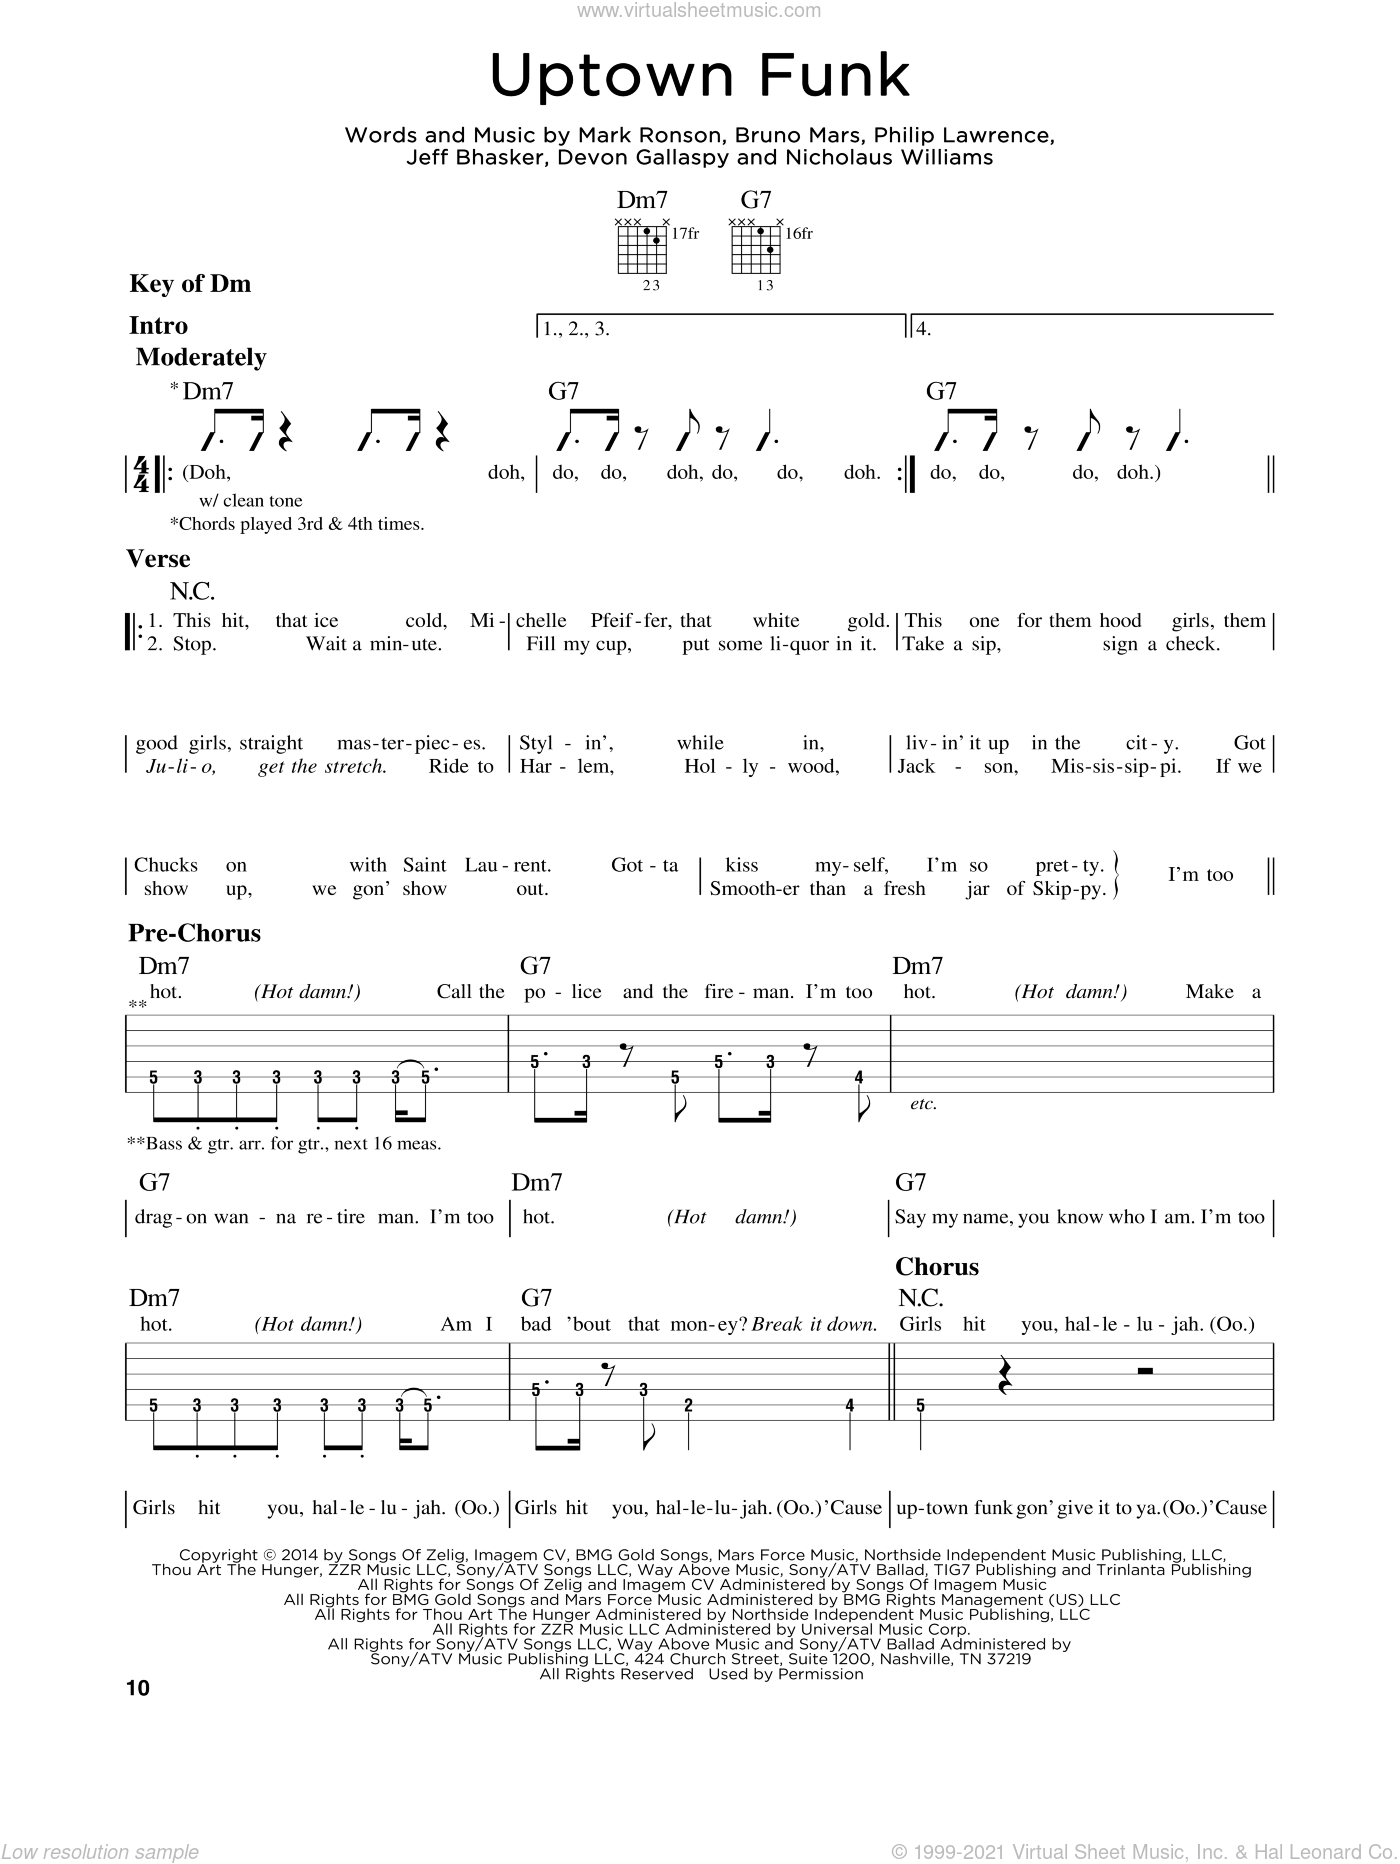 Uptown Funk sheet music for guitar solo (lead sheet) by Philip Lawrence, Bruno Mars, Devon Gallaspy, Jeff Bhasker and Mark Ronson. Score Image Preview.